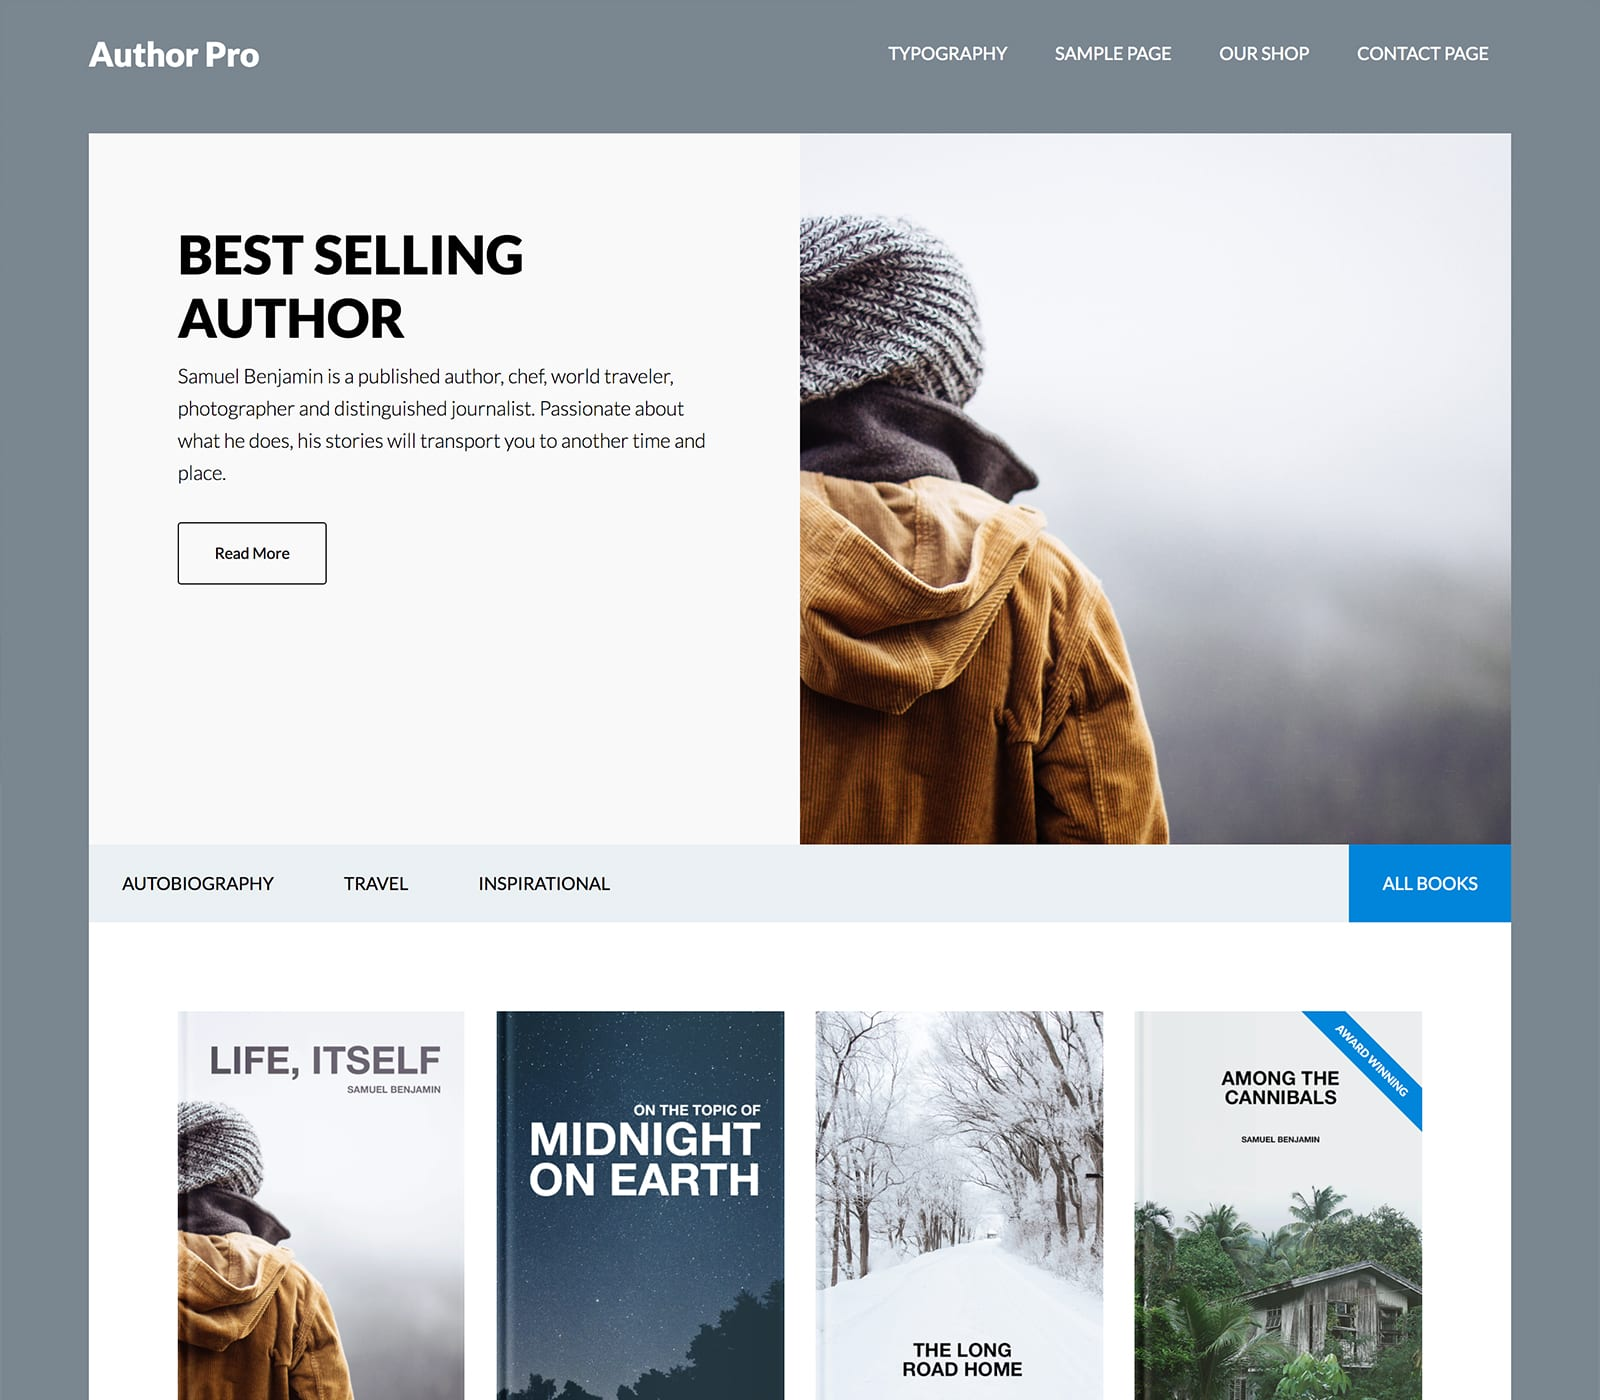 Author Pro is a great theme for published authors. With author pro, you build a better online library of books with its intuitive design and powerful functionality. Showcase your published work with the user-friendly features of Author Pro.